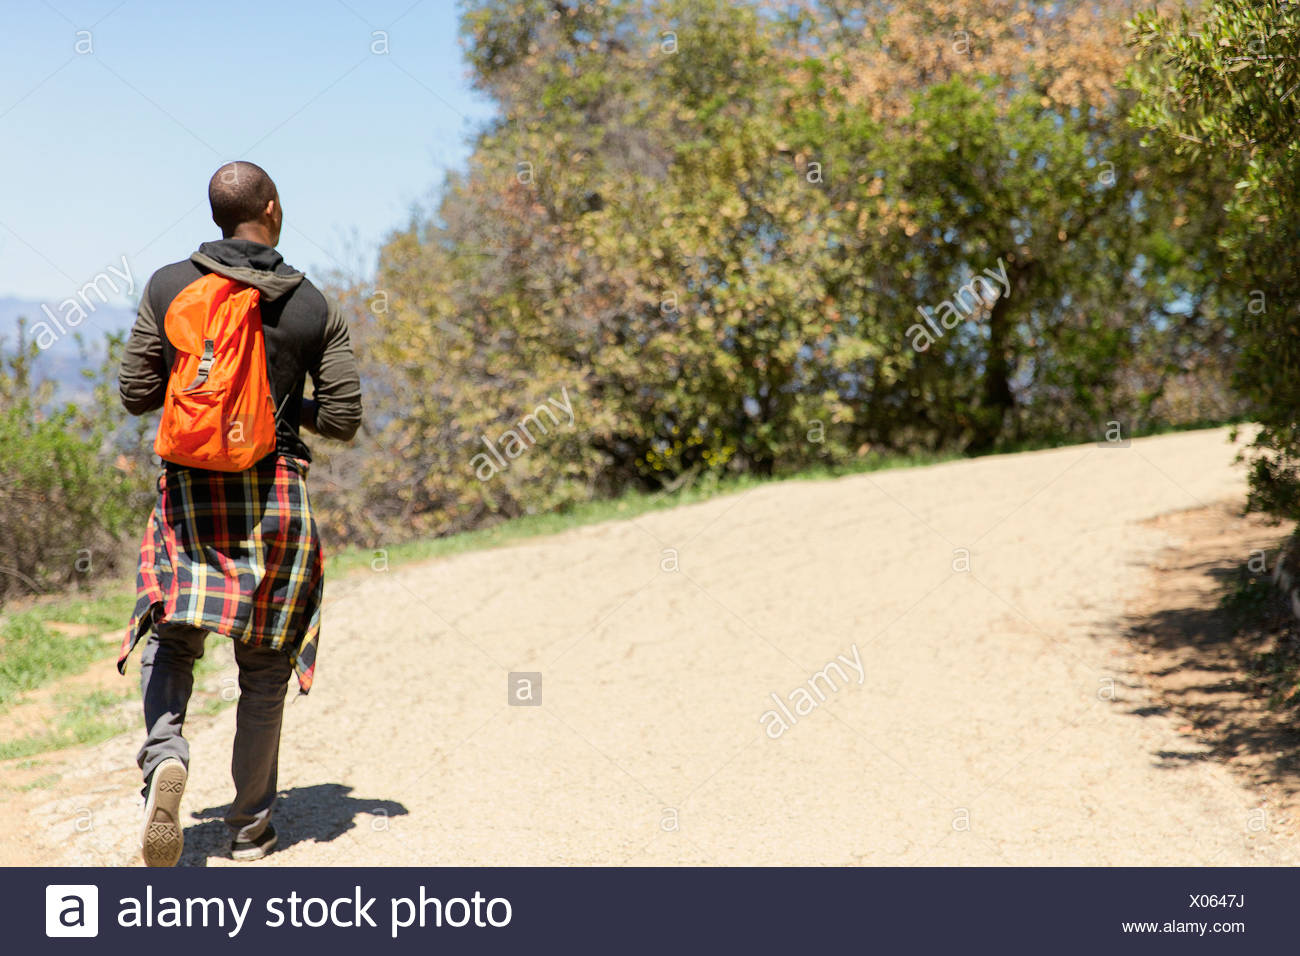 Young man with backpack strolling in park - Stock Image